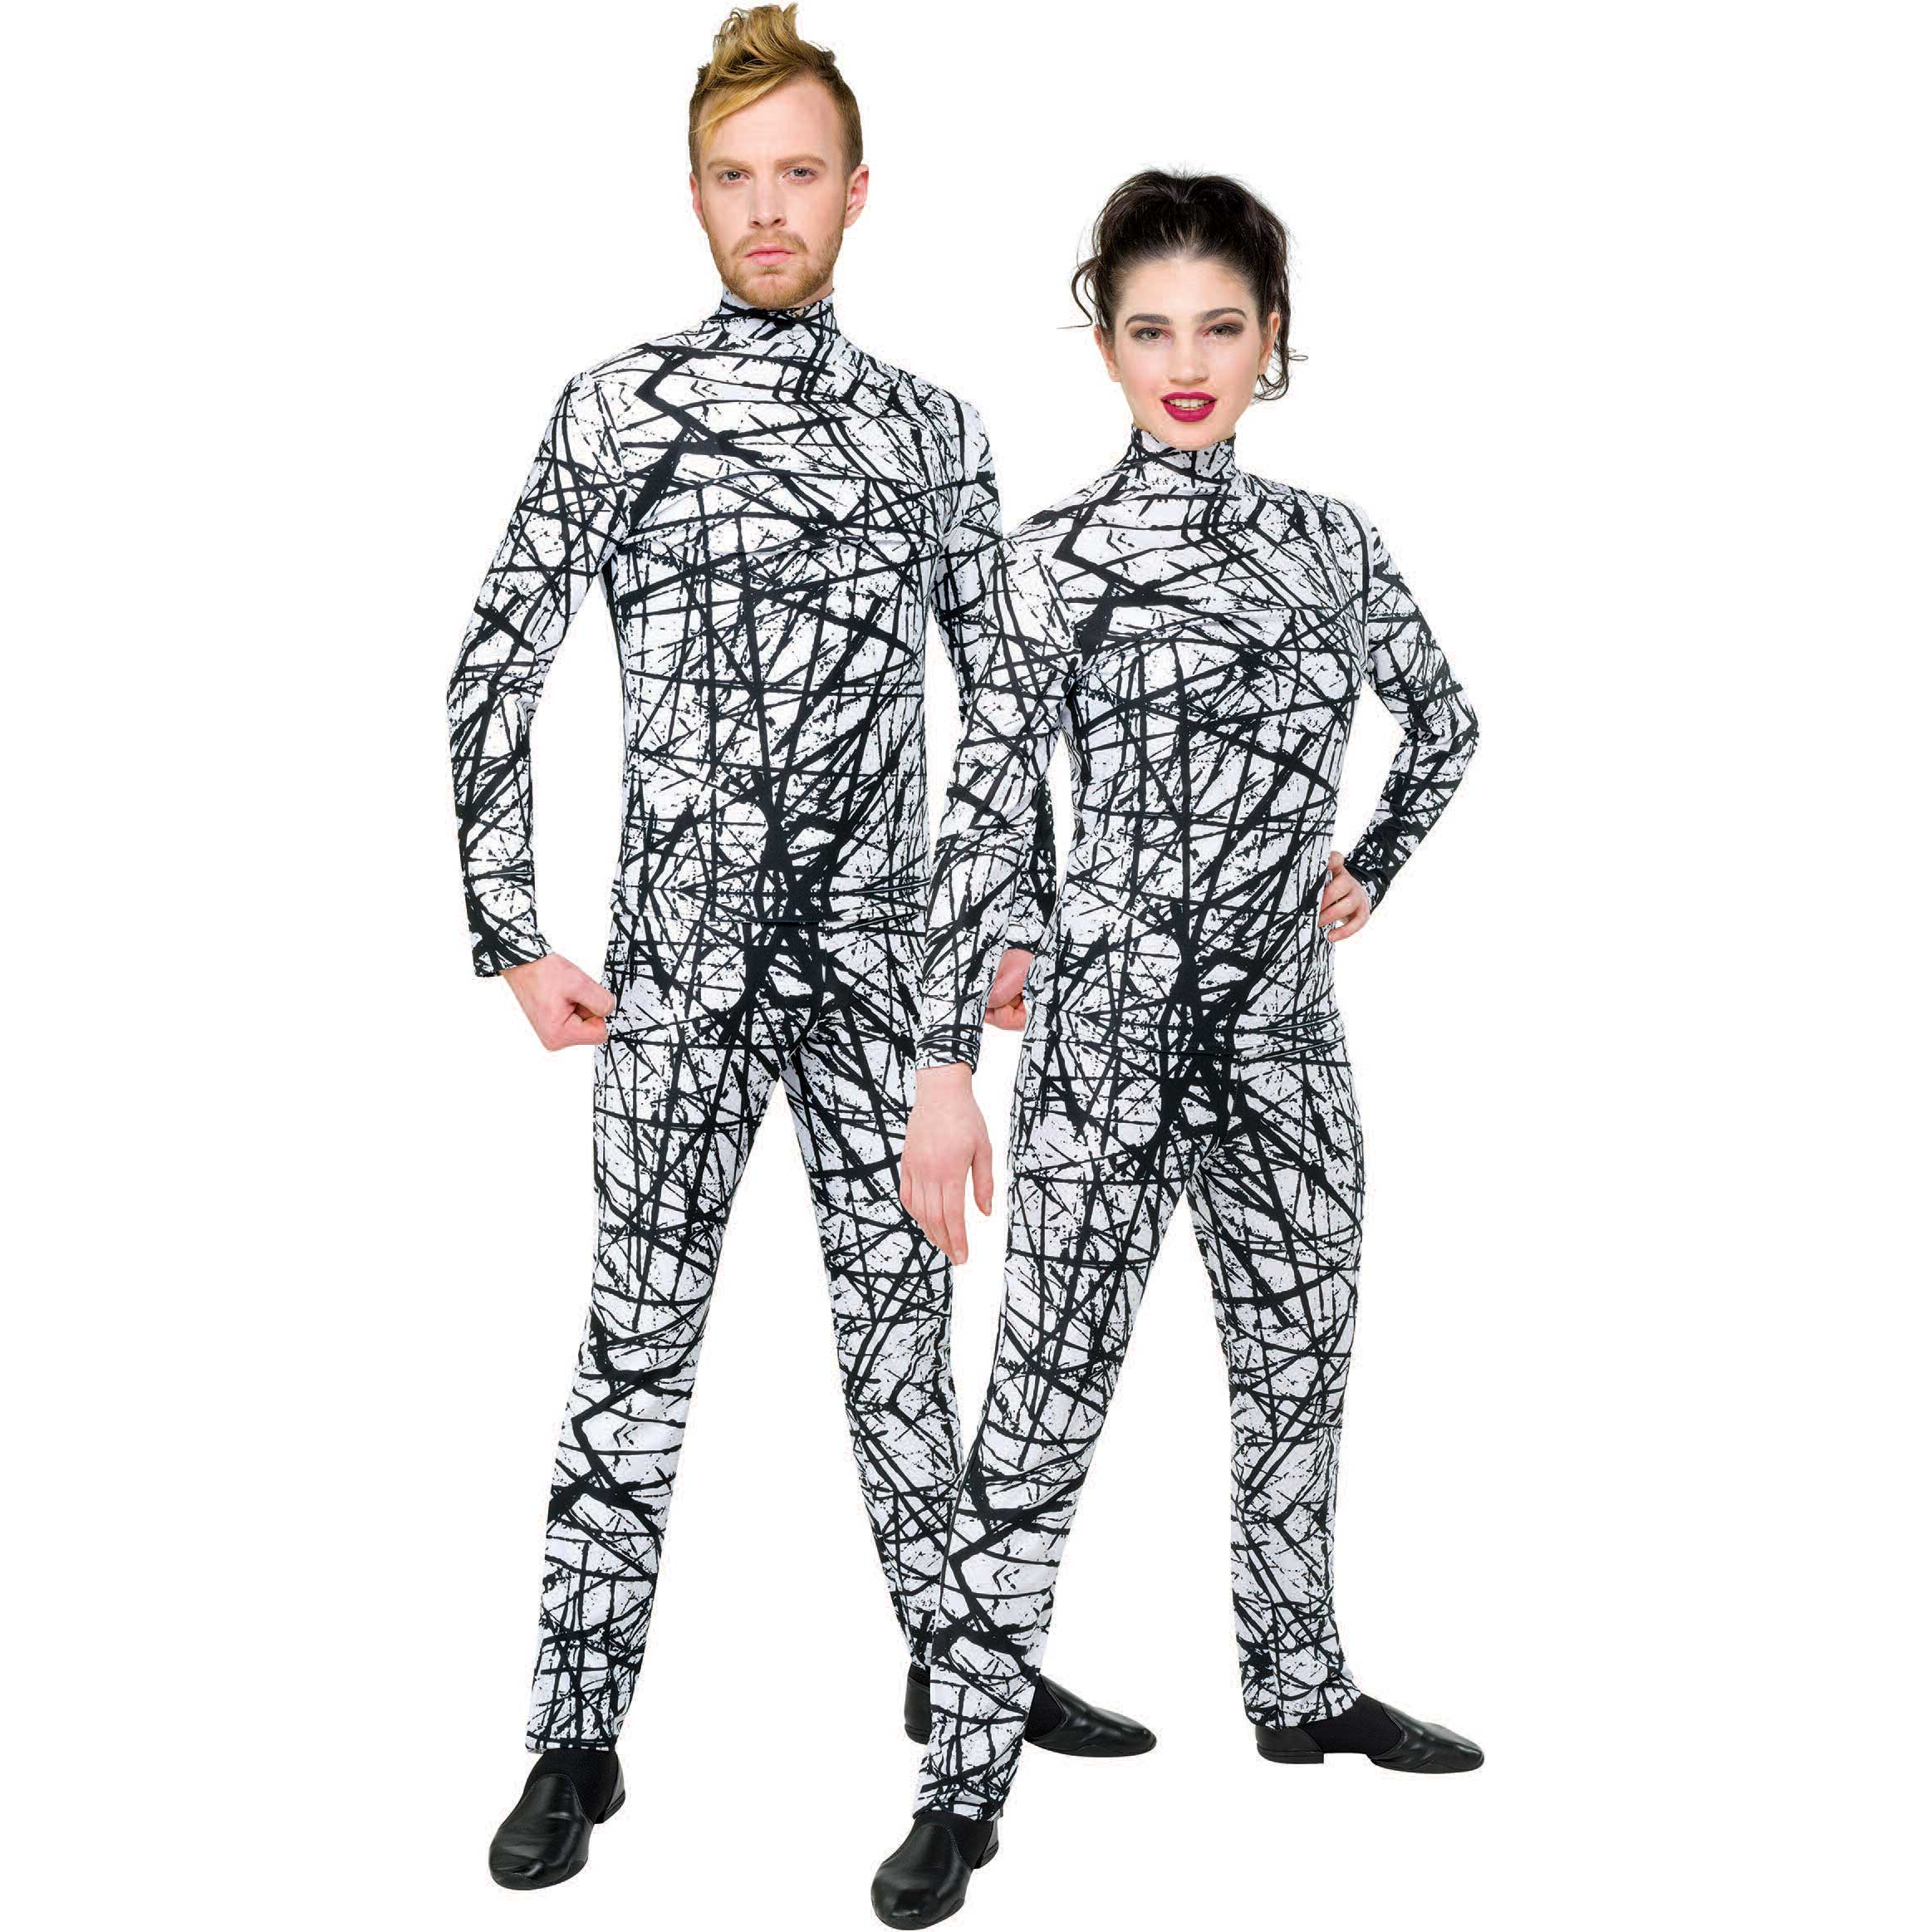 Digital Uniforms: 17600 Unisex Top, Style CP059